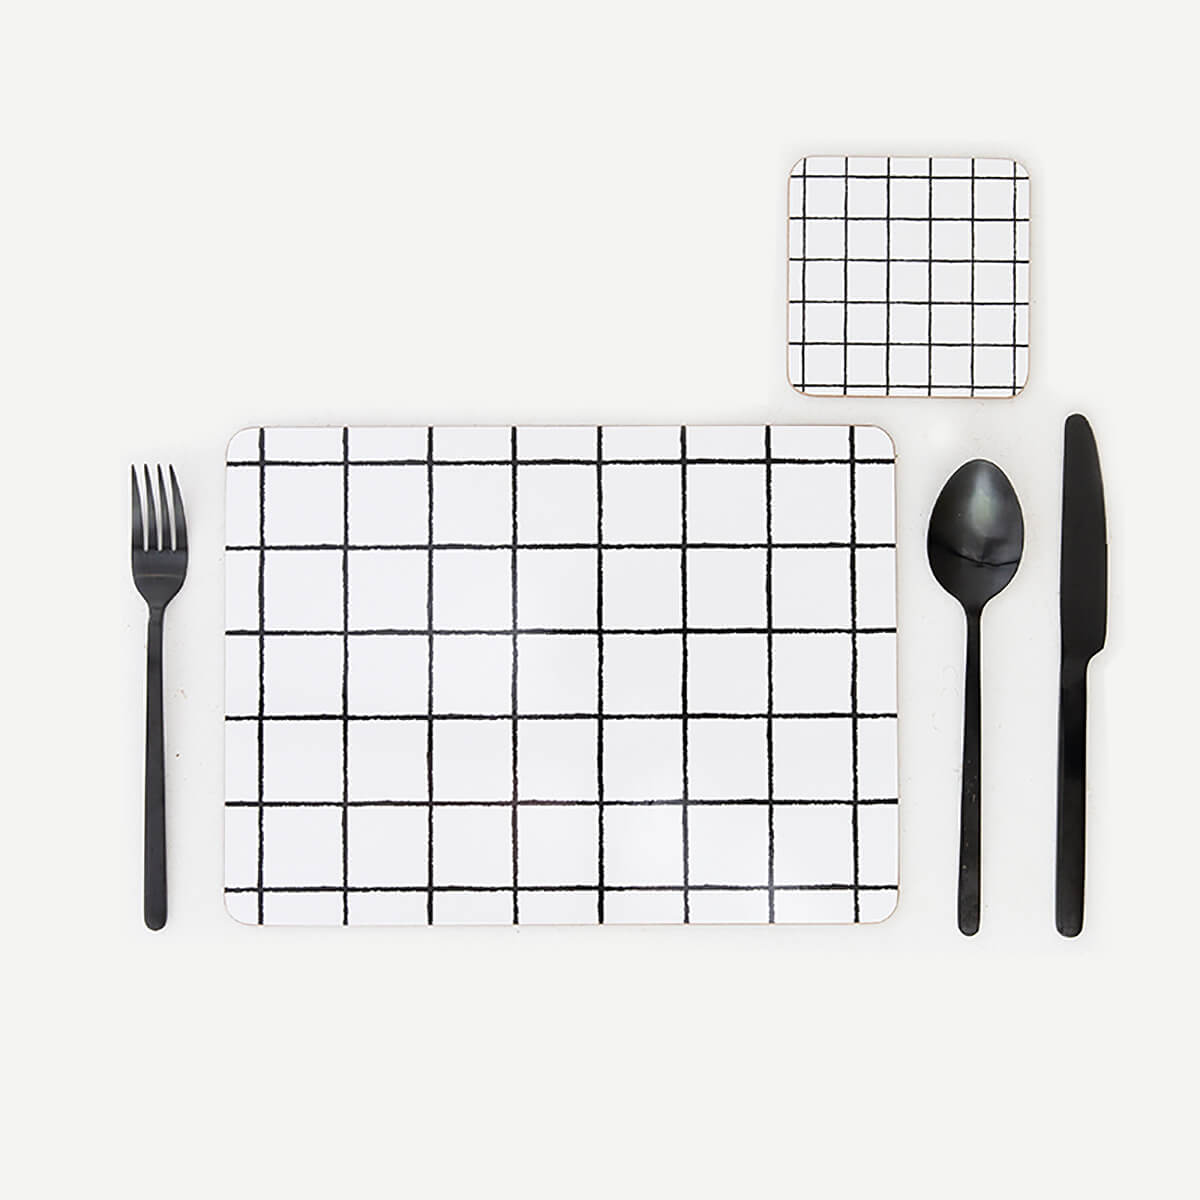 MY HYGGE HOME  |  GLAM GRID DELUXE PLACEMATS + COASTERS  |  SETTING OF 4